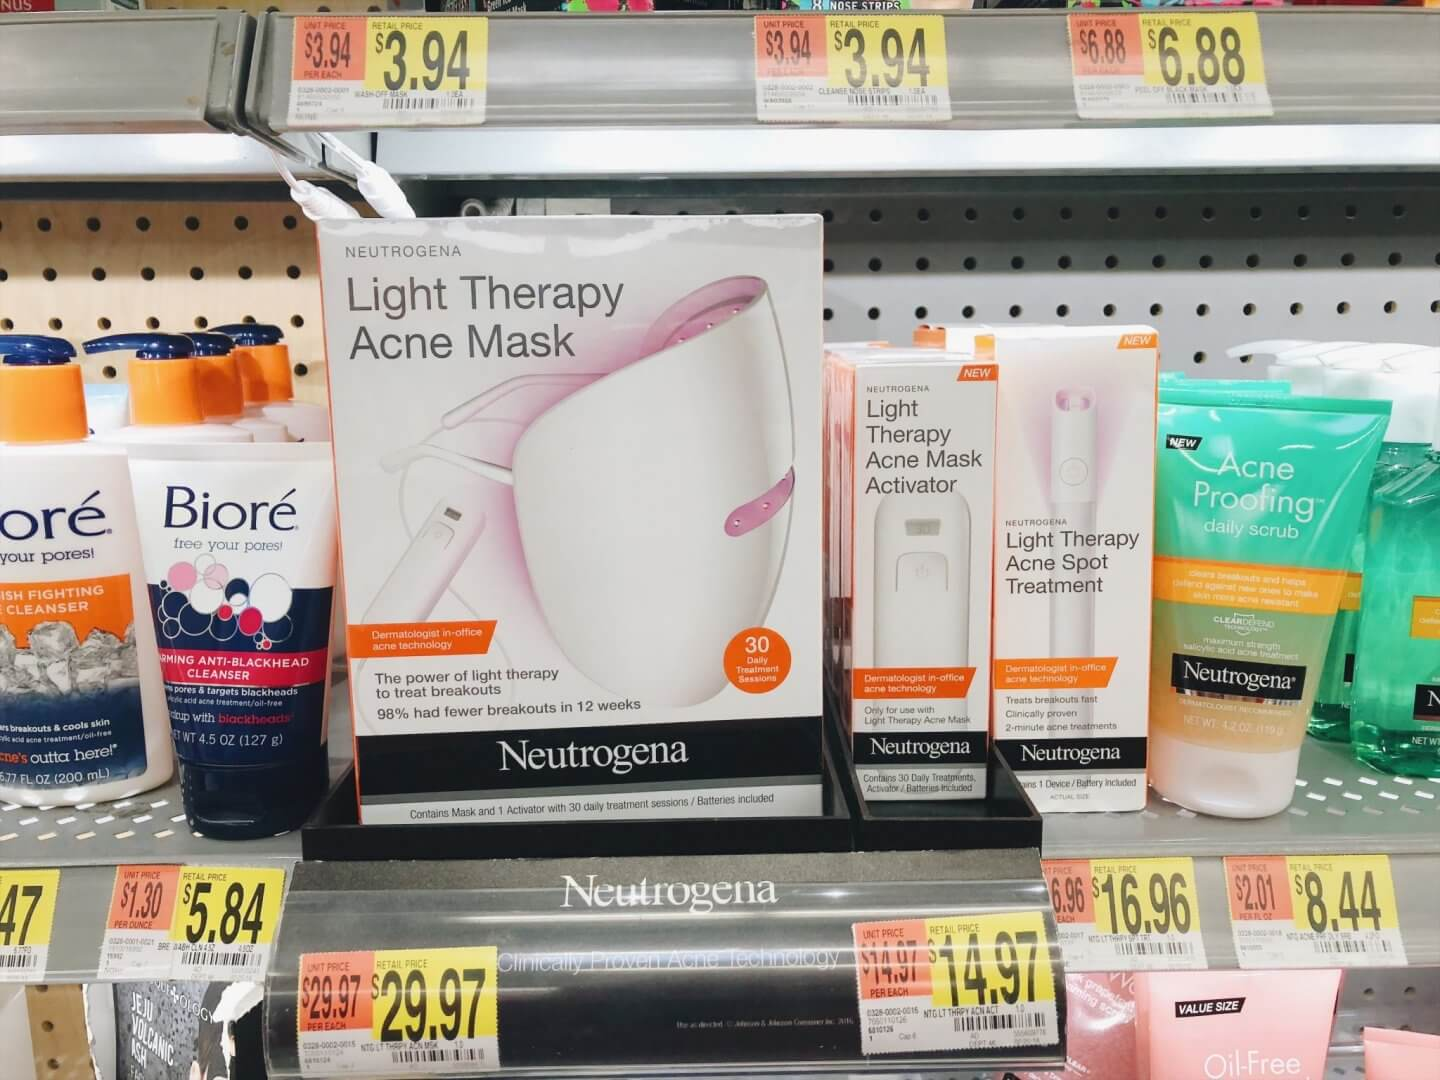 Combating-acne-with-Neutrogena-Light-Therapy-Acne-Mask